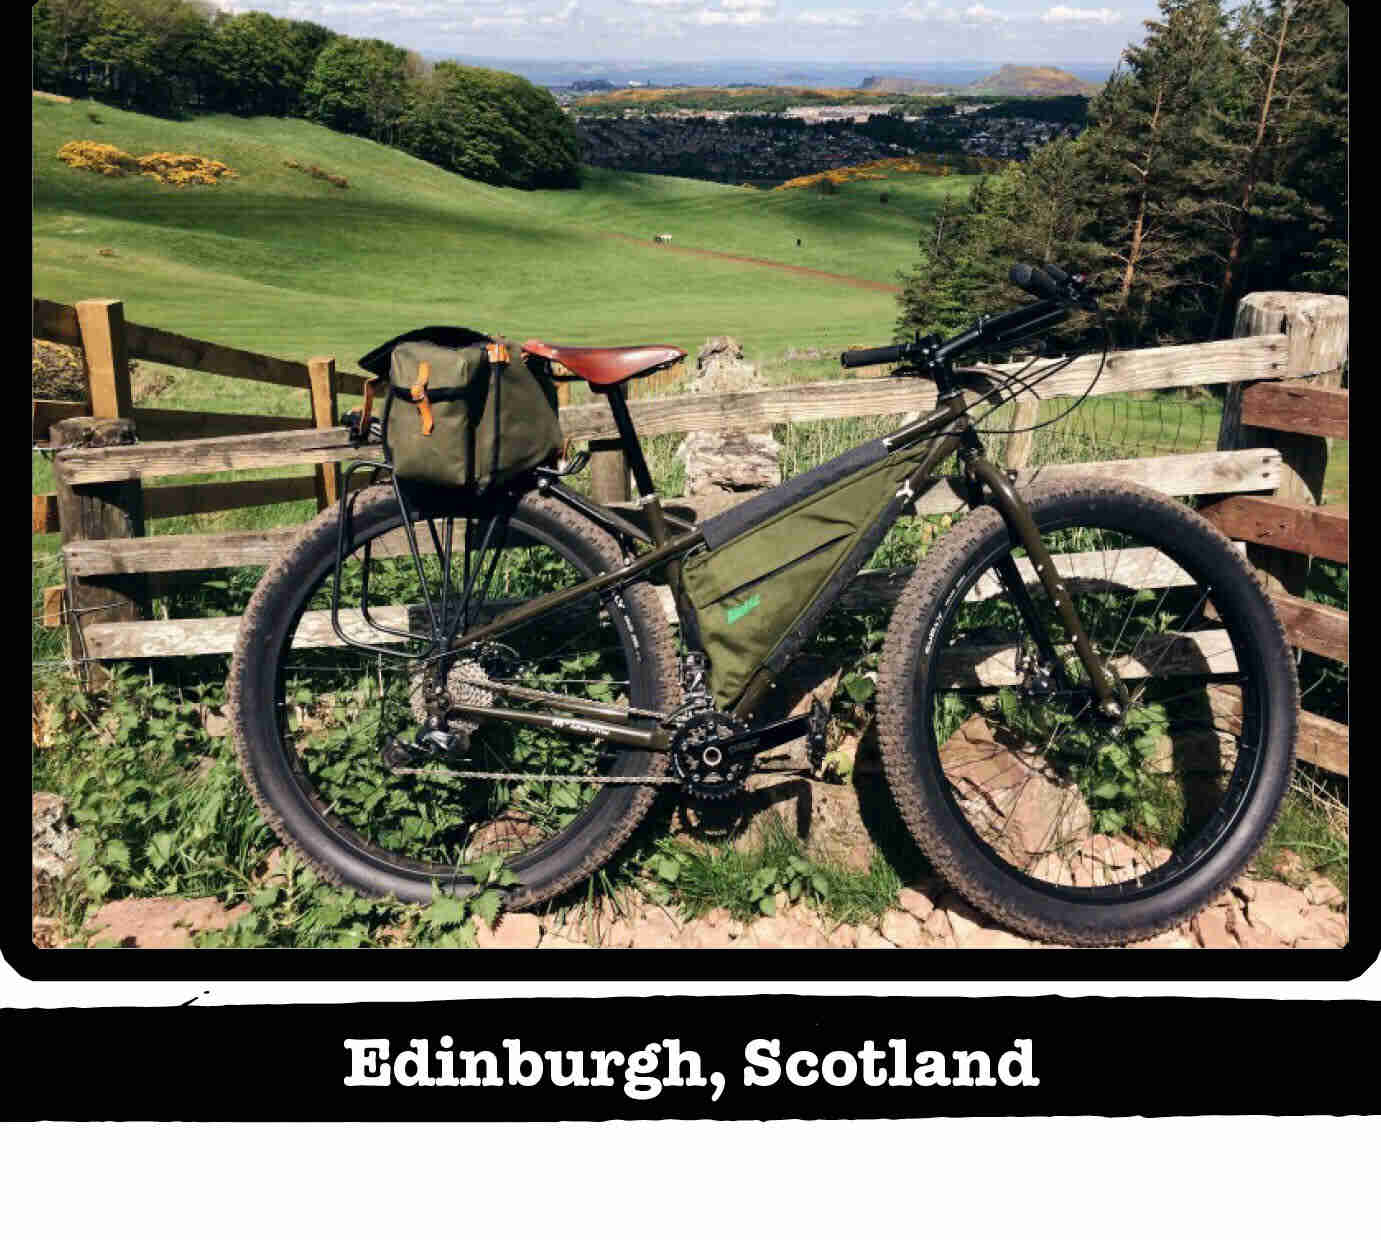 Right side view of Surly ECR bike, olive, against a wood fence - Edinburgh, Scotland tag below image